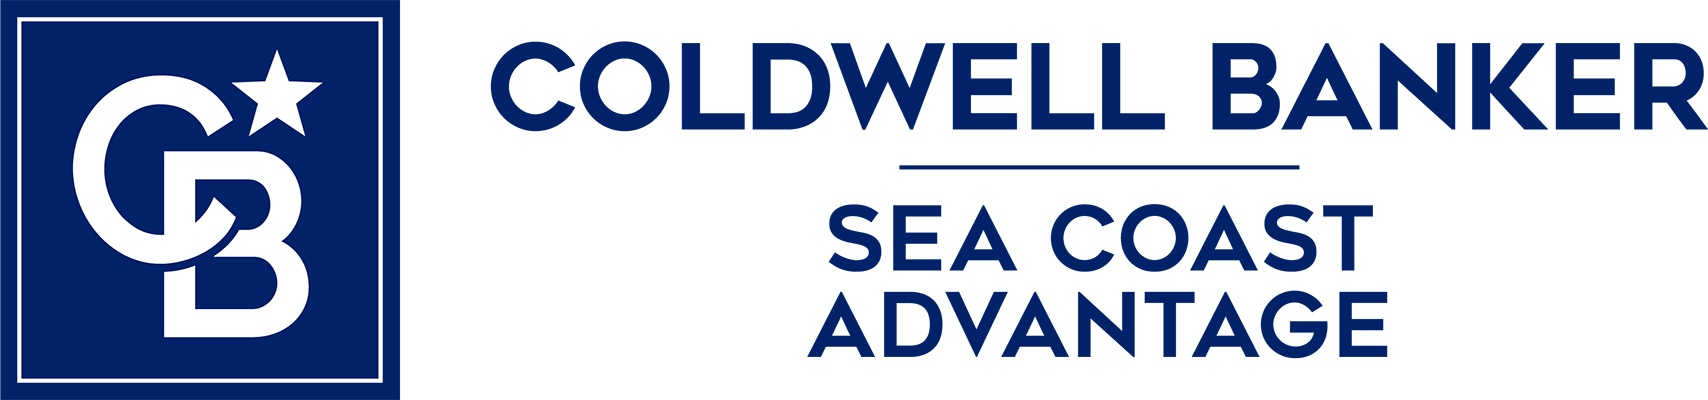 Sherwood Strickland - Coldwell Banker Sea Coast Advantage Realty